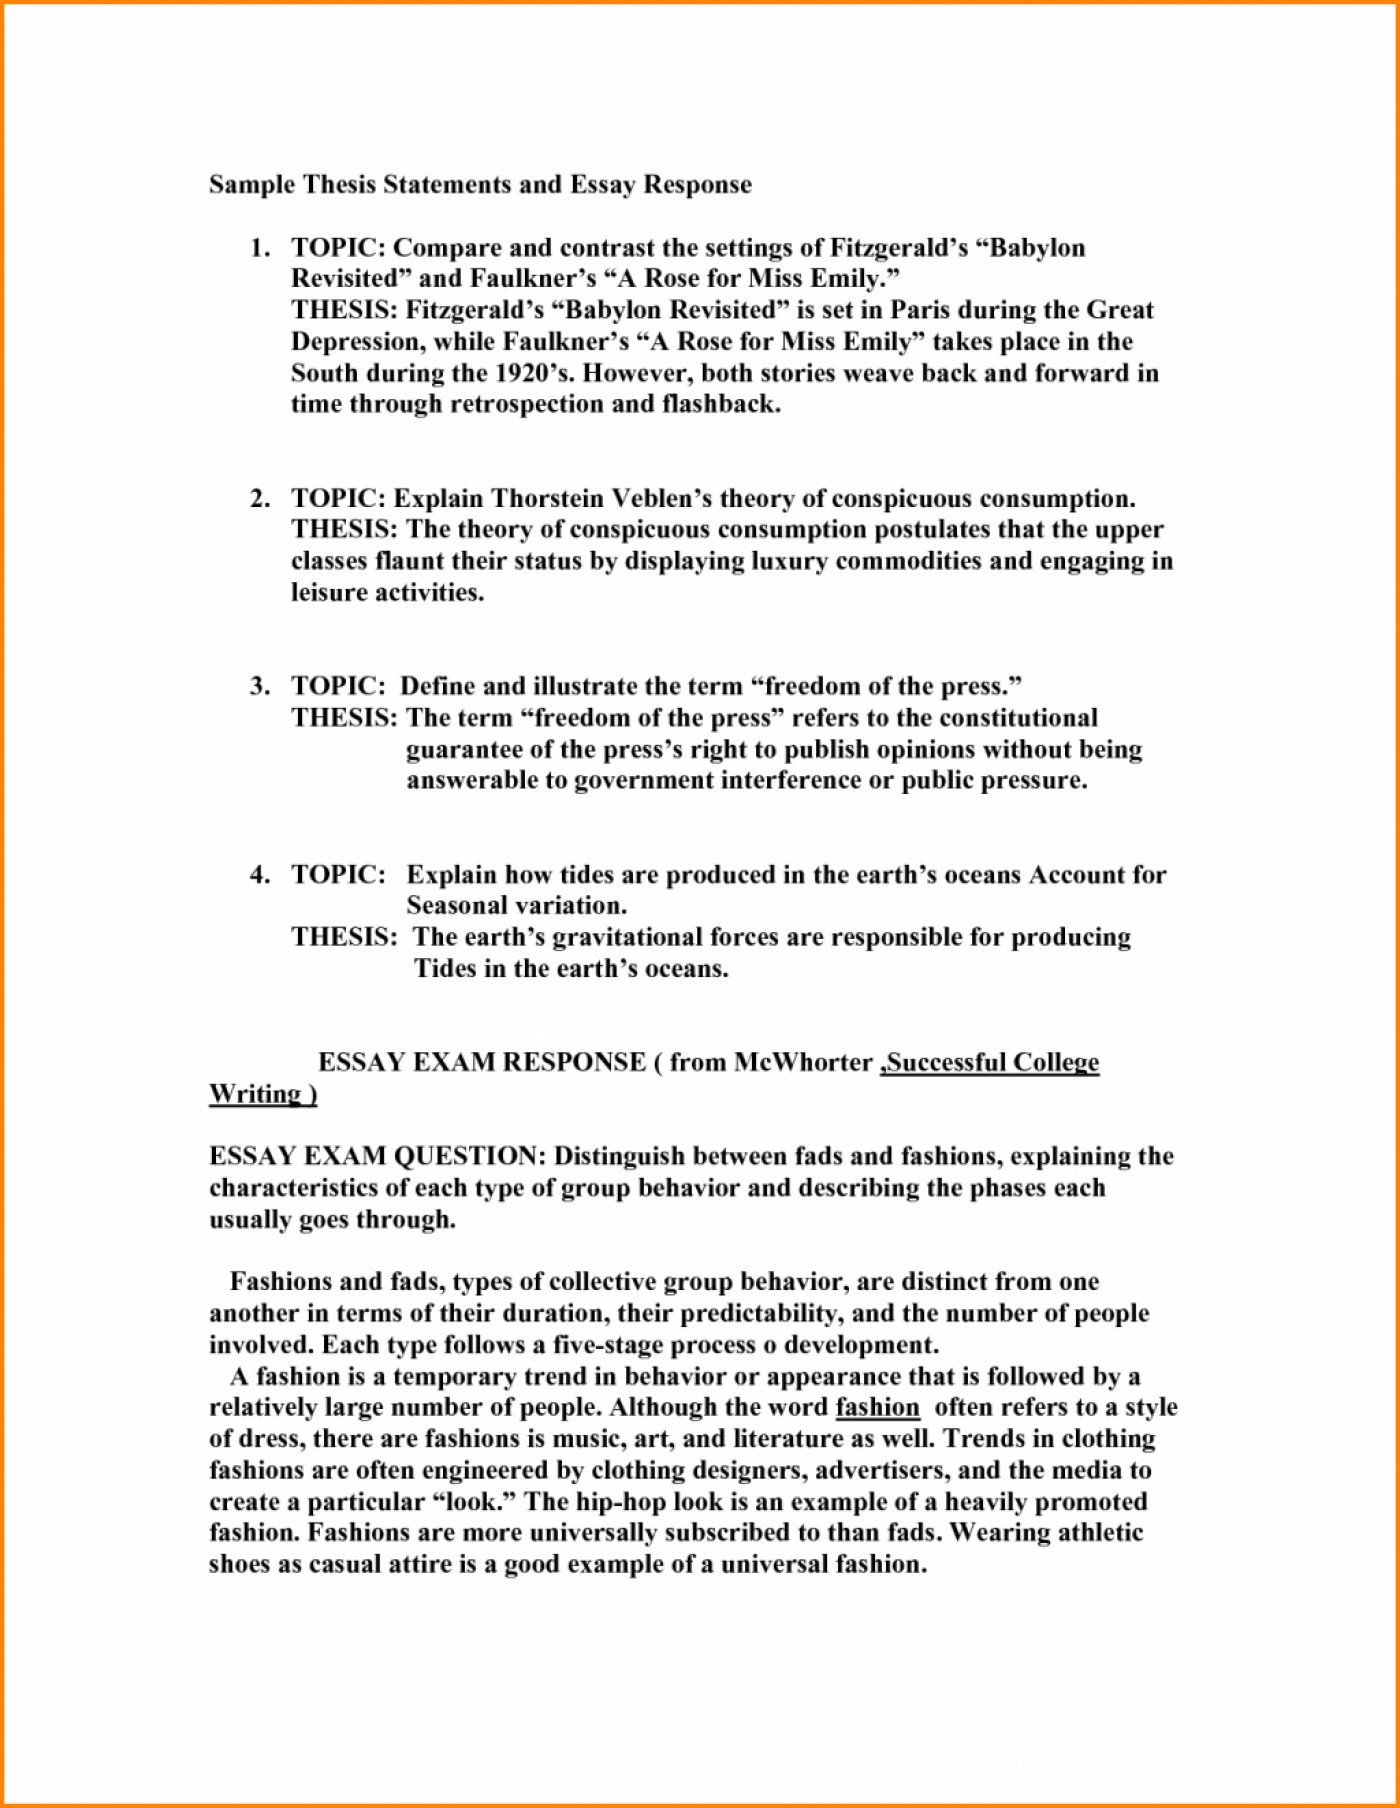 004 Definitionsay Thesis Statement Examples Template Forsays Example Of Stunning 1024x1323 Freedom Breathtaking Essay Contest Riders Conclusion Scholarship 1400